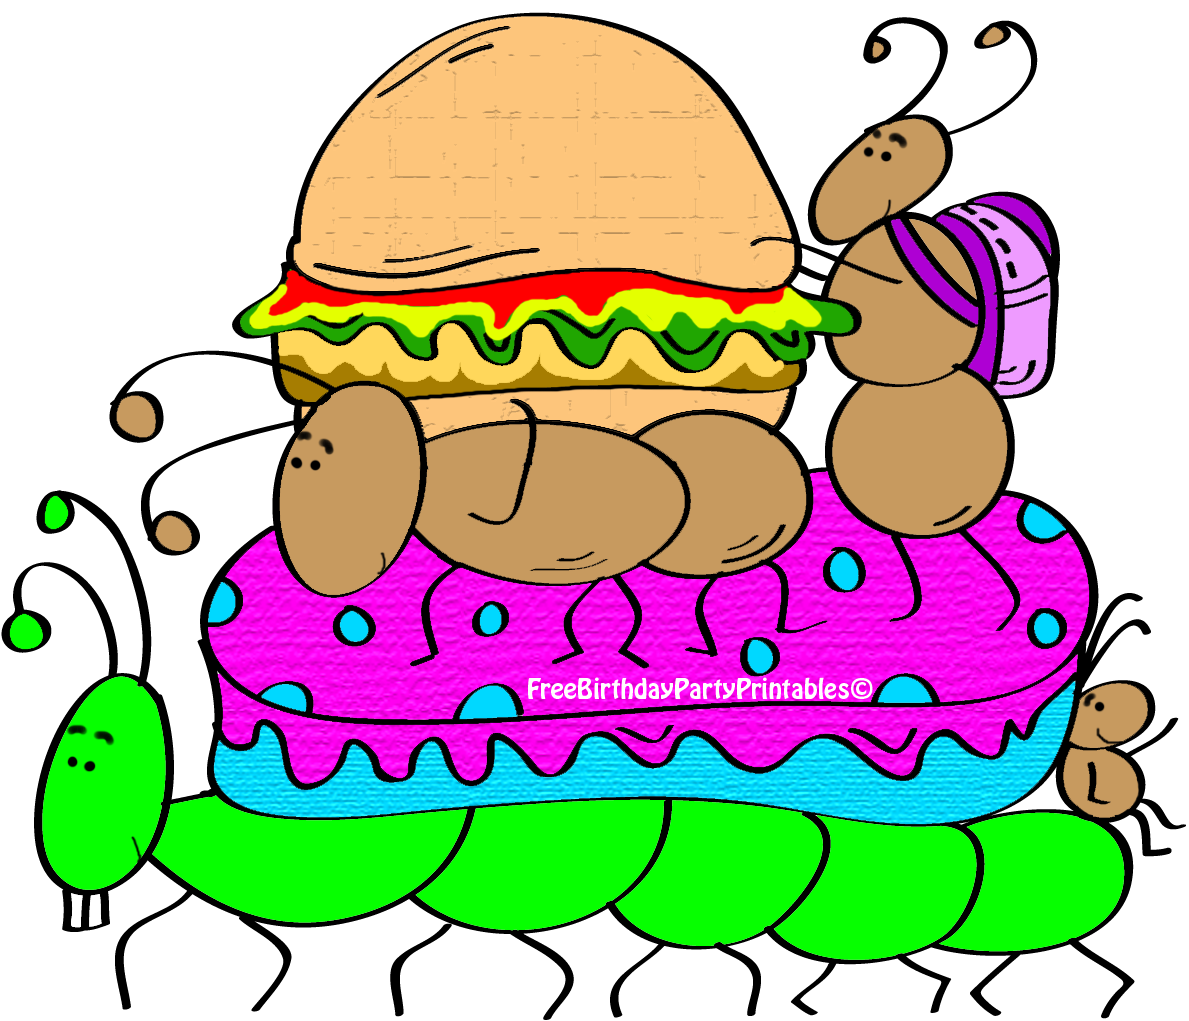 Hamburger clipart printable. Ant picnic birthday party